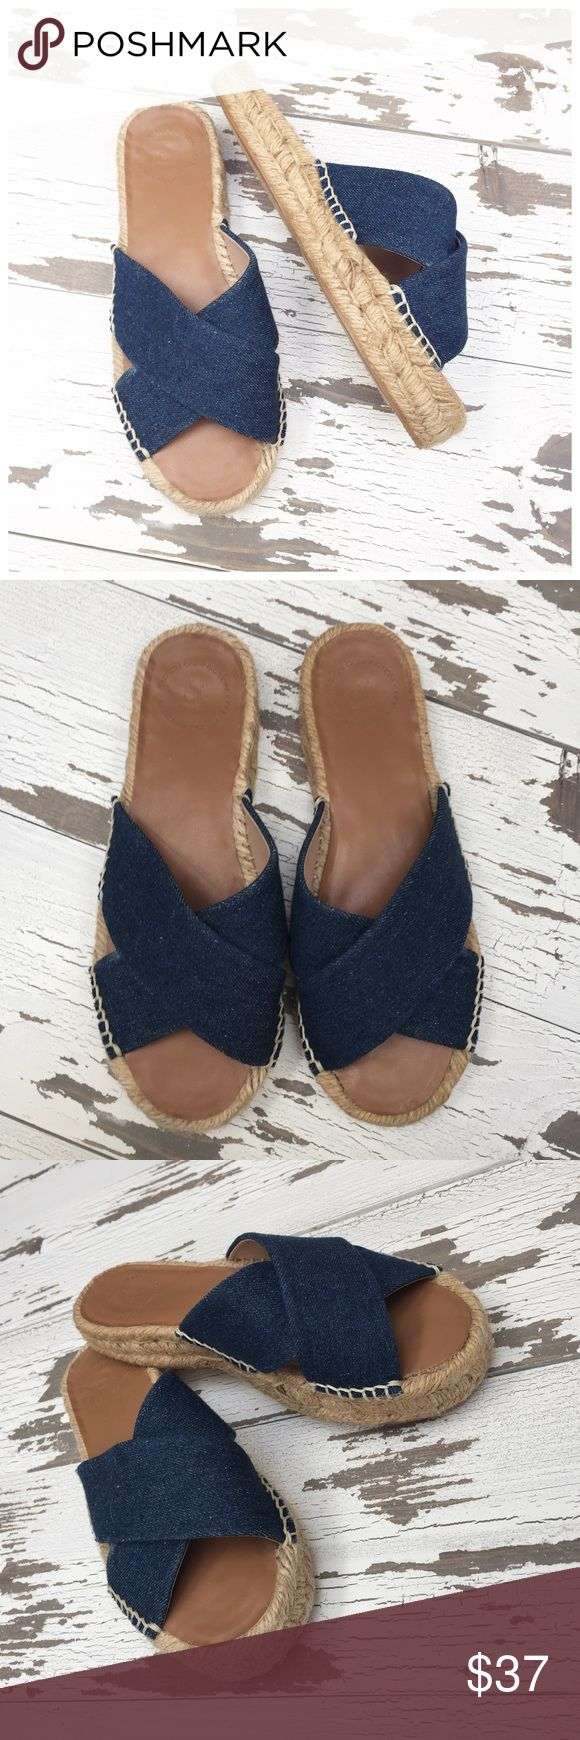 🌟NWOT🌟 Never Worn French Connection Espadrilles Shoes have never been worn and are in perfect like new condition. 1 inch platform sole. French Connection Shoes Espadrilles